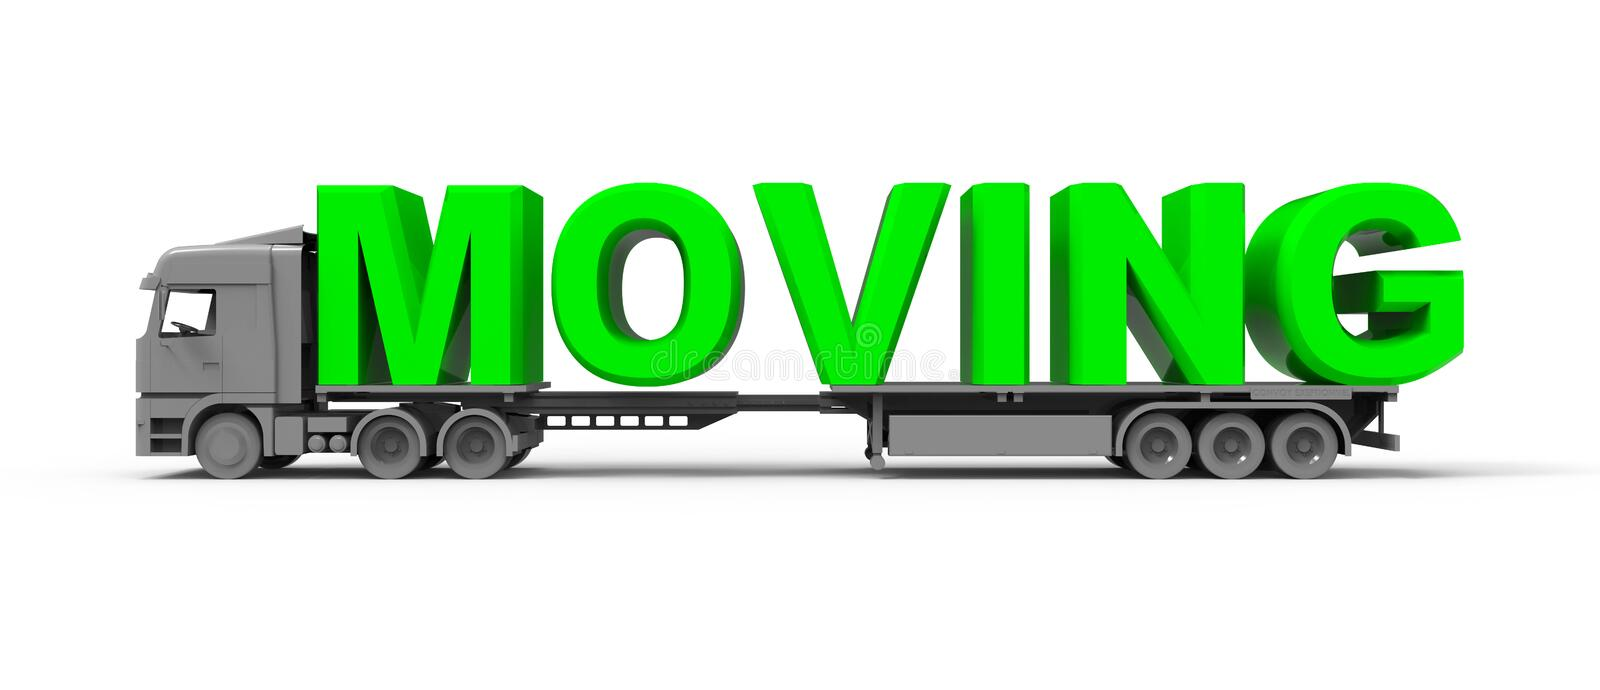 Moving truck concept. Moving text in green color loaded in to a truck stock illustration